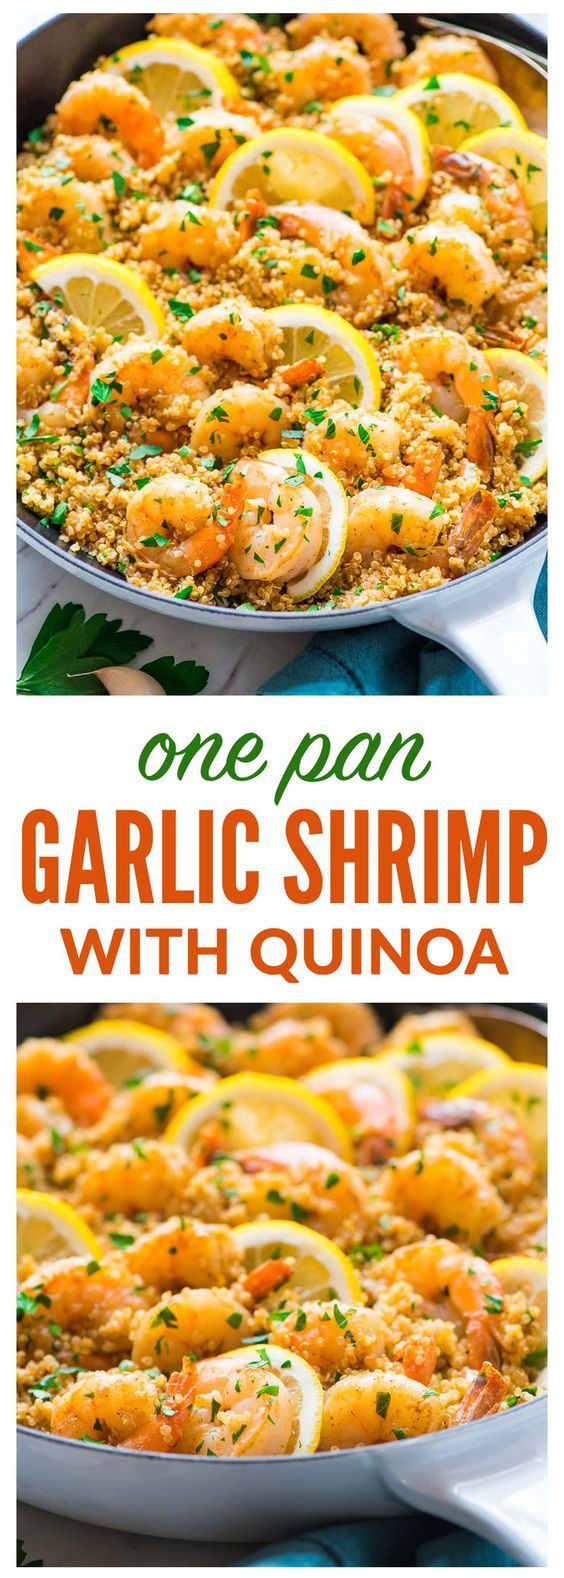 Garlic Shrimp with Quinoa — Easy, quick, and delicious! Healthy recipe with fresh lemon and garlic. Not too spicy with lots of flavor! {gluten free and dairy free} Recipe at wellplated.com | @wellplated